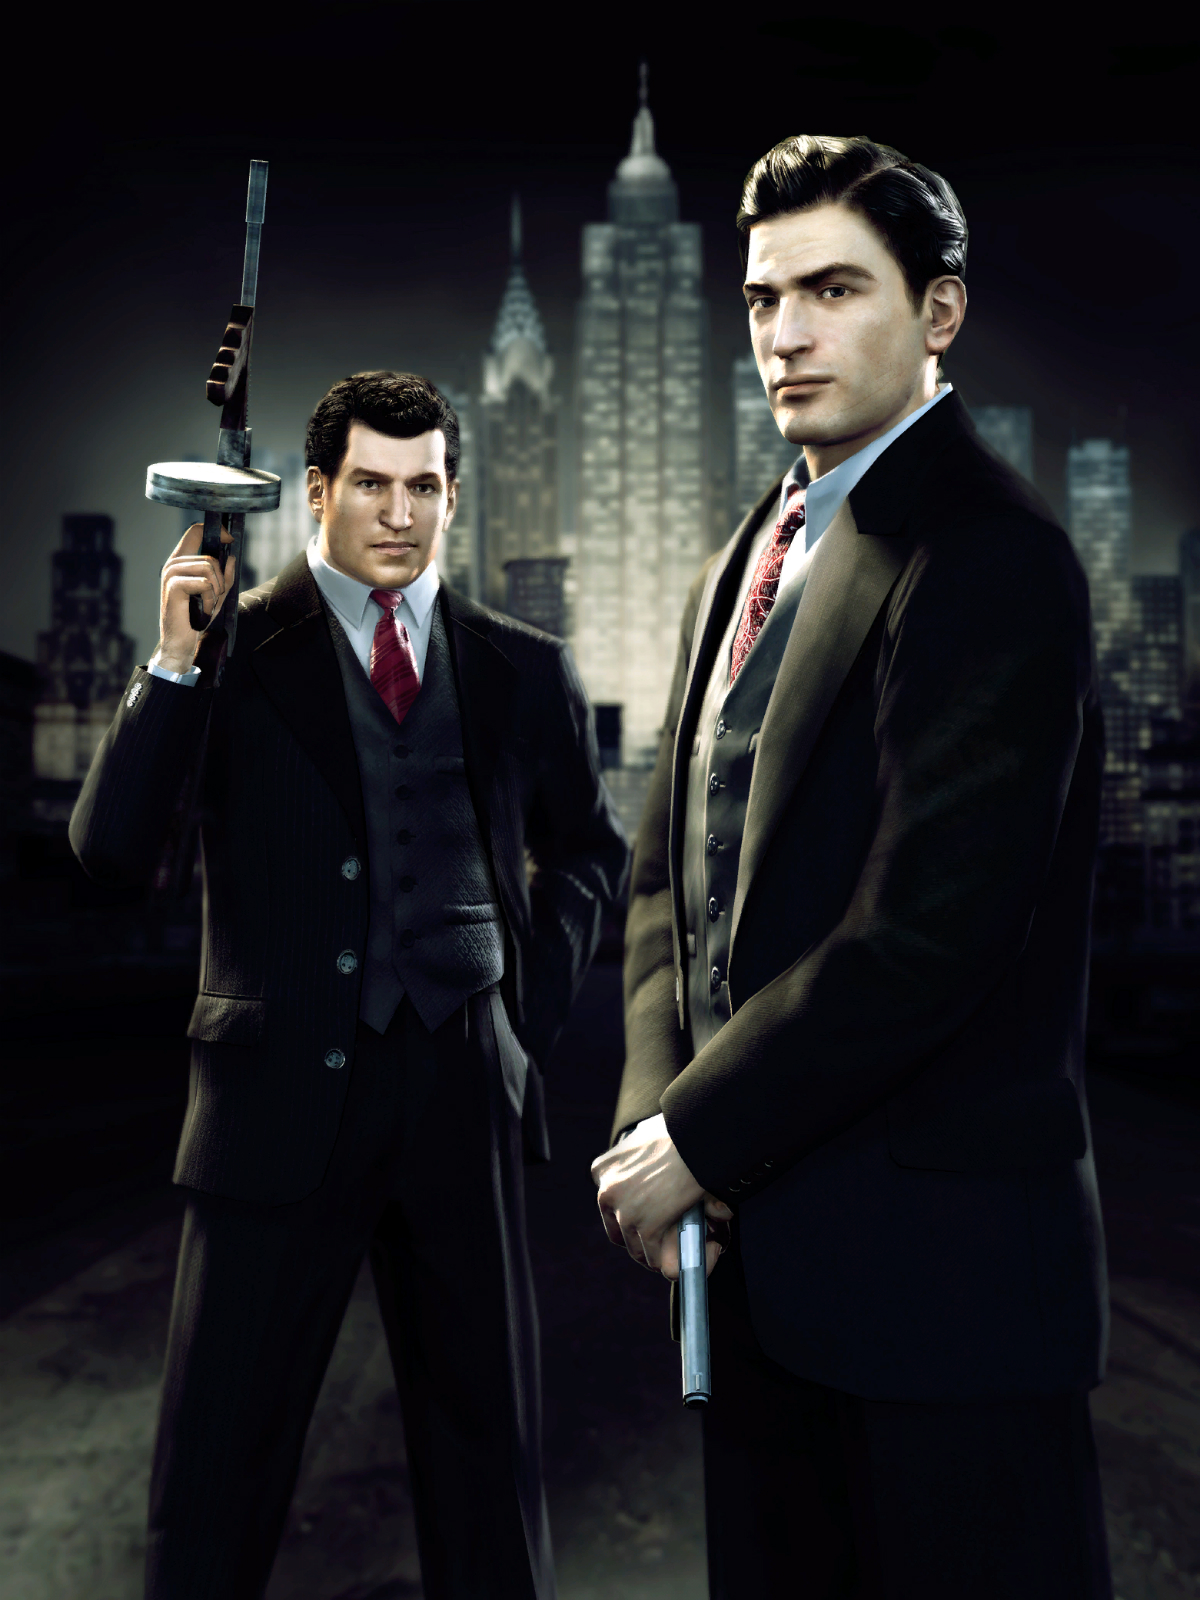 Mafia Ii Hd Game Wallpapers Wallpapers